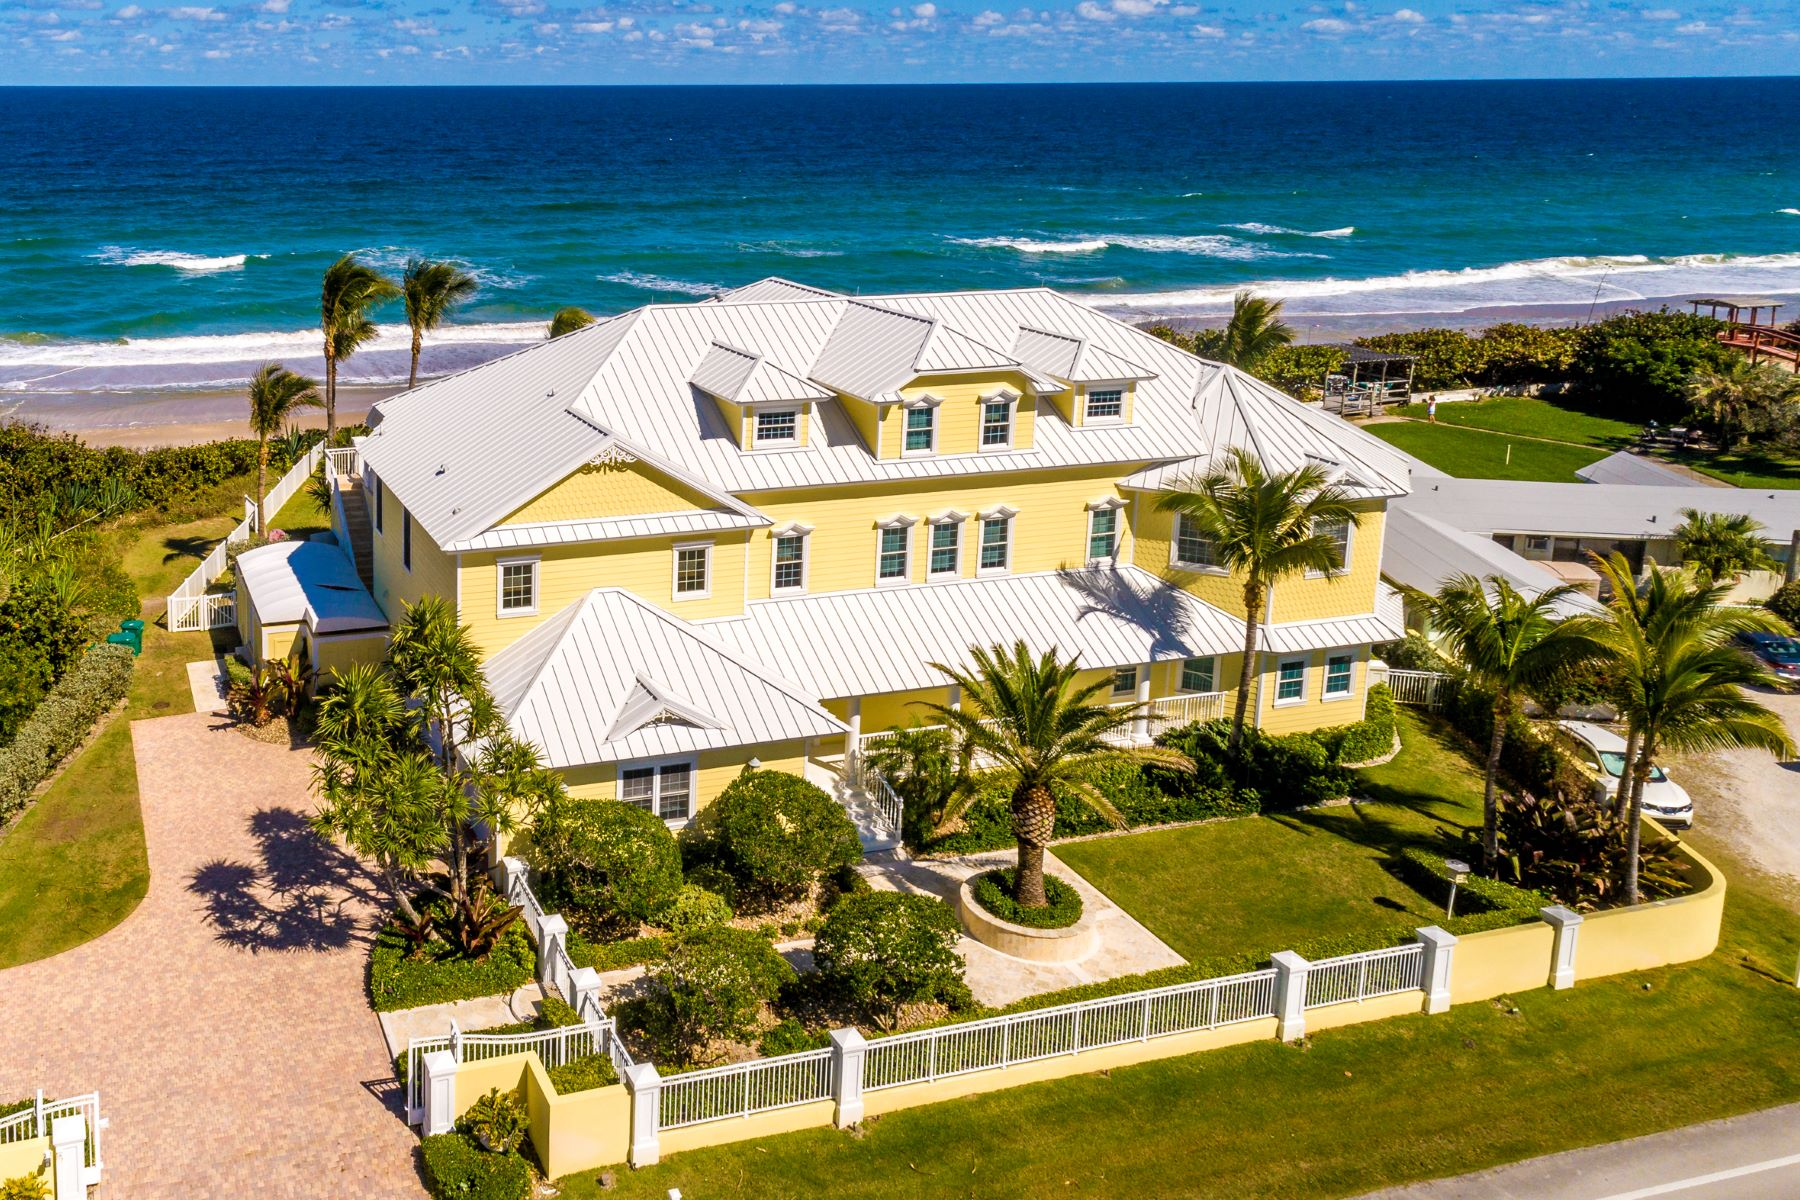 Single Family Homes for Sale at Gorgeous Tropically Landscaped Home with Endless Ocean Vistas 5045 S Highway A1A Melbourne Beach, Florida 32951 United States